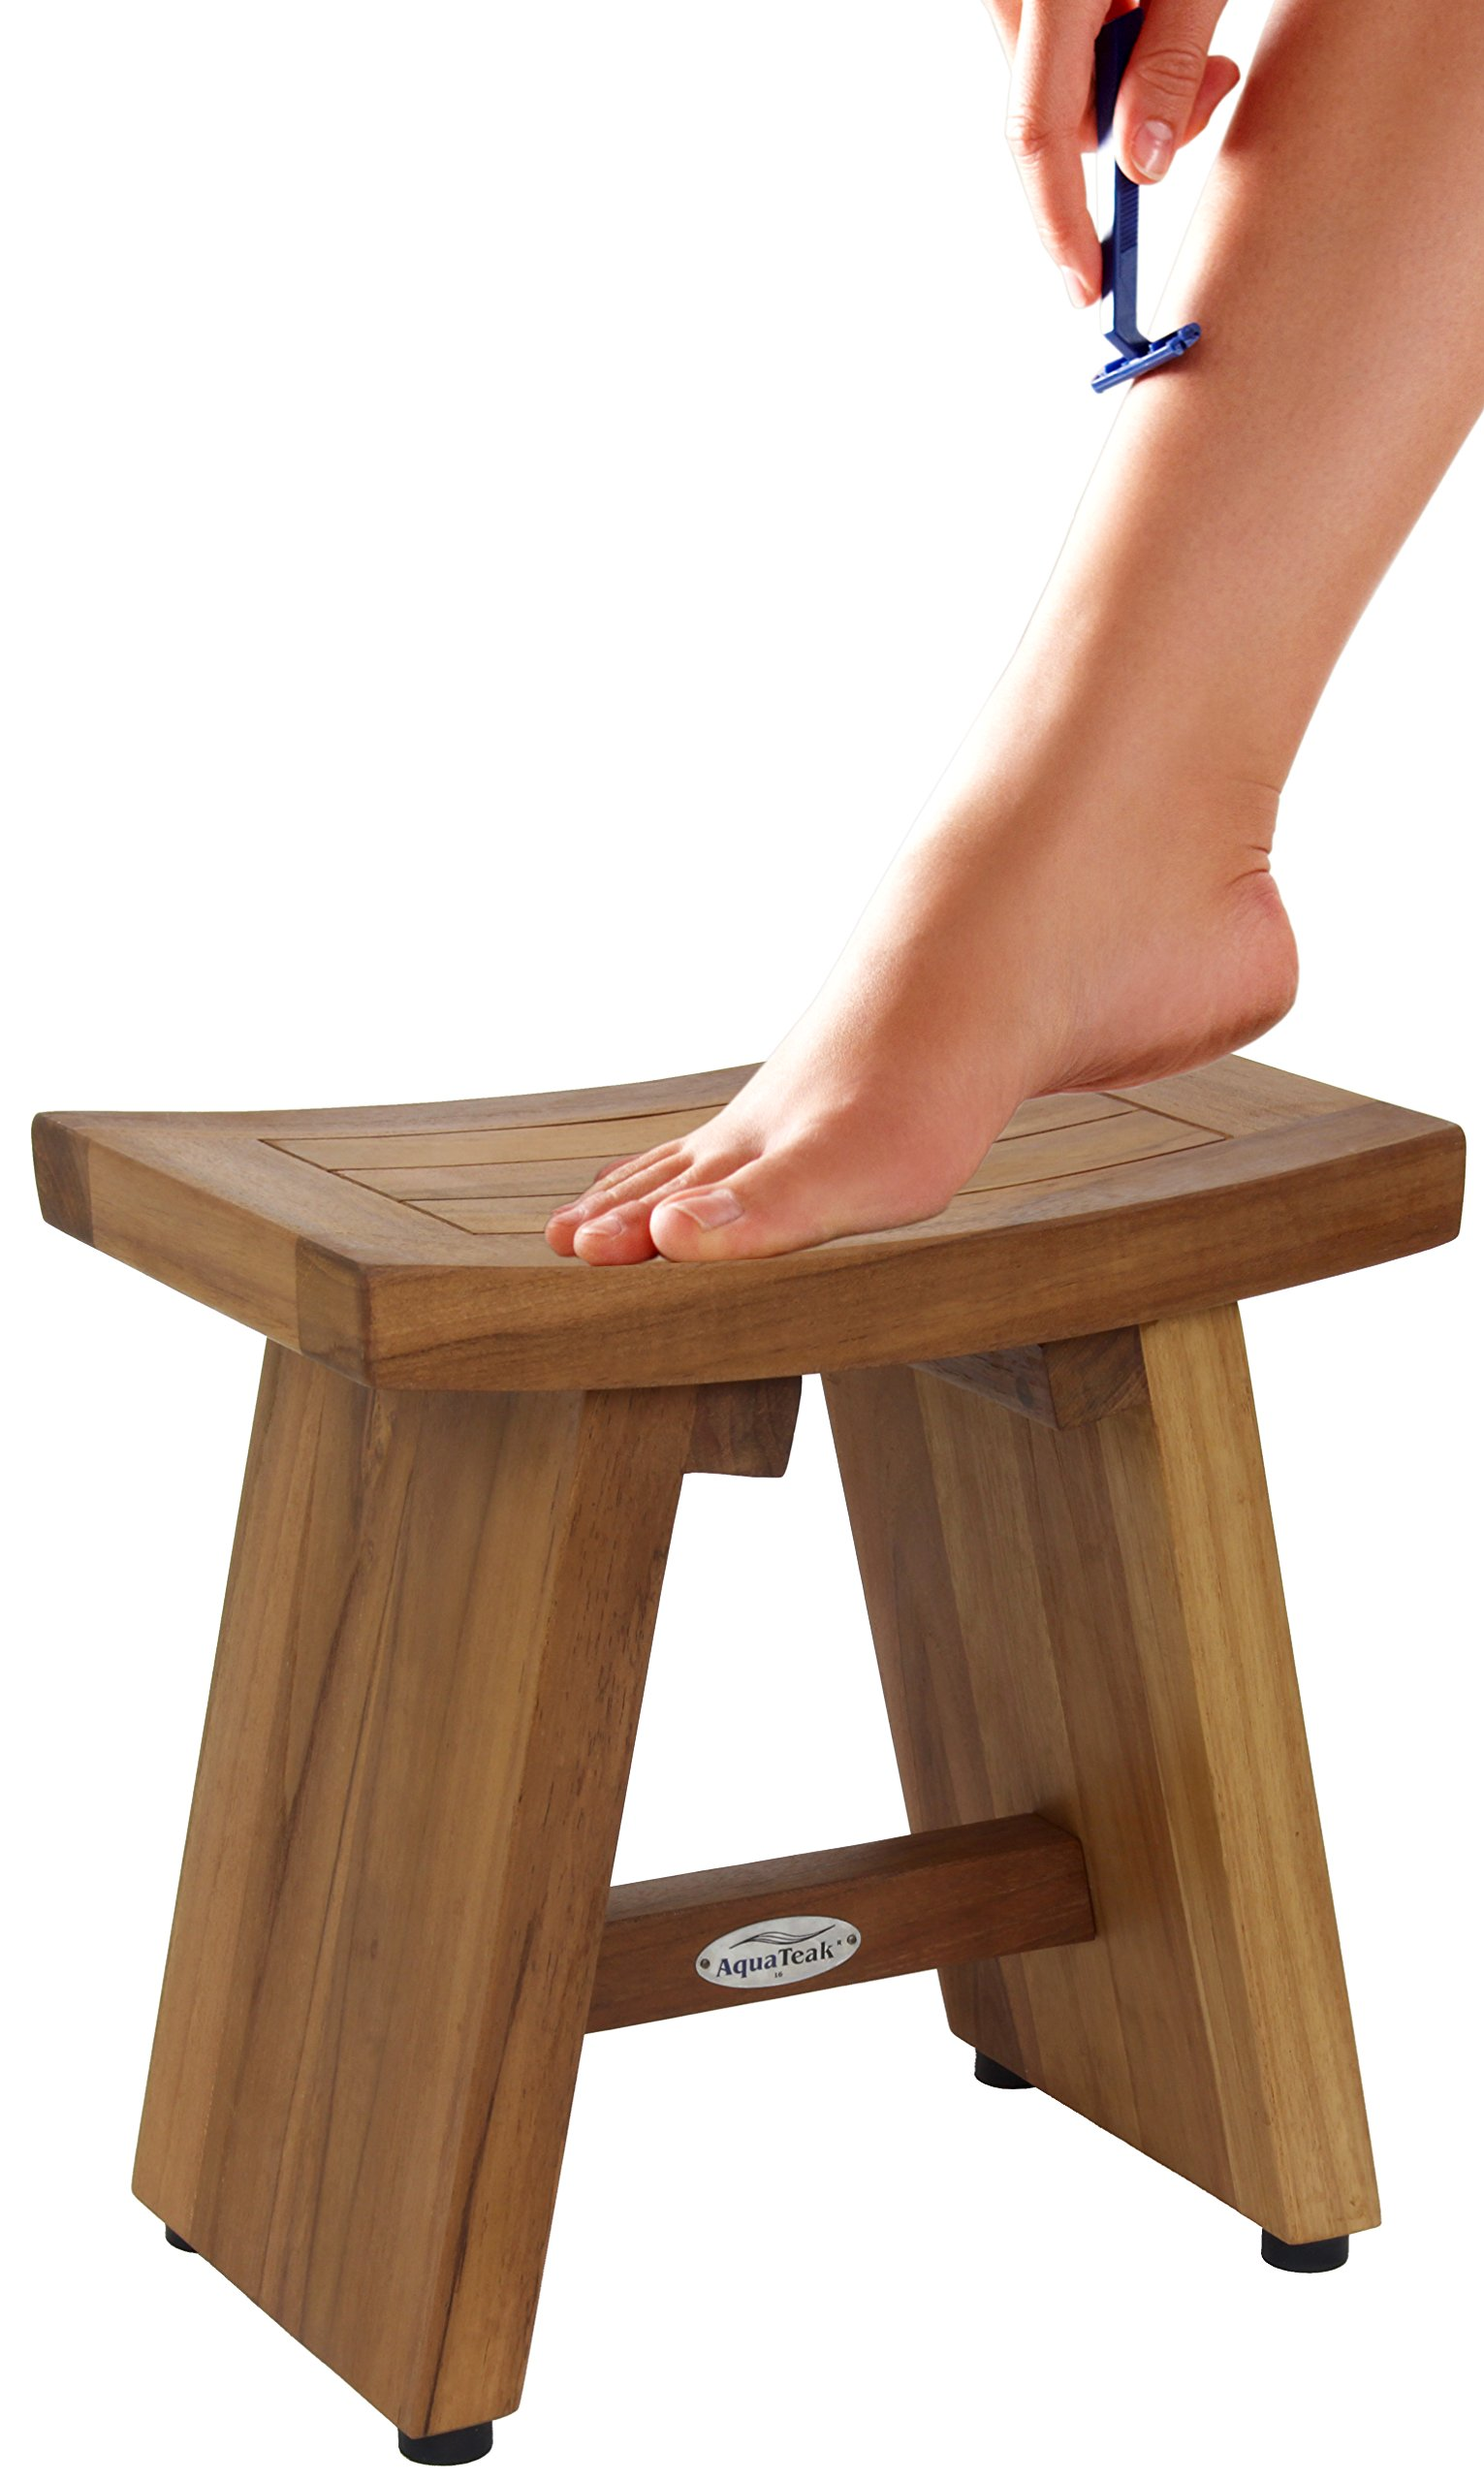 13'' Asia Teak Shower Foot Stool